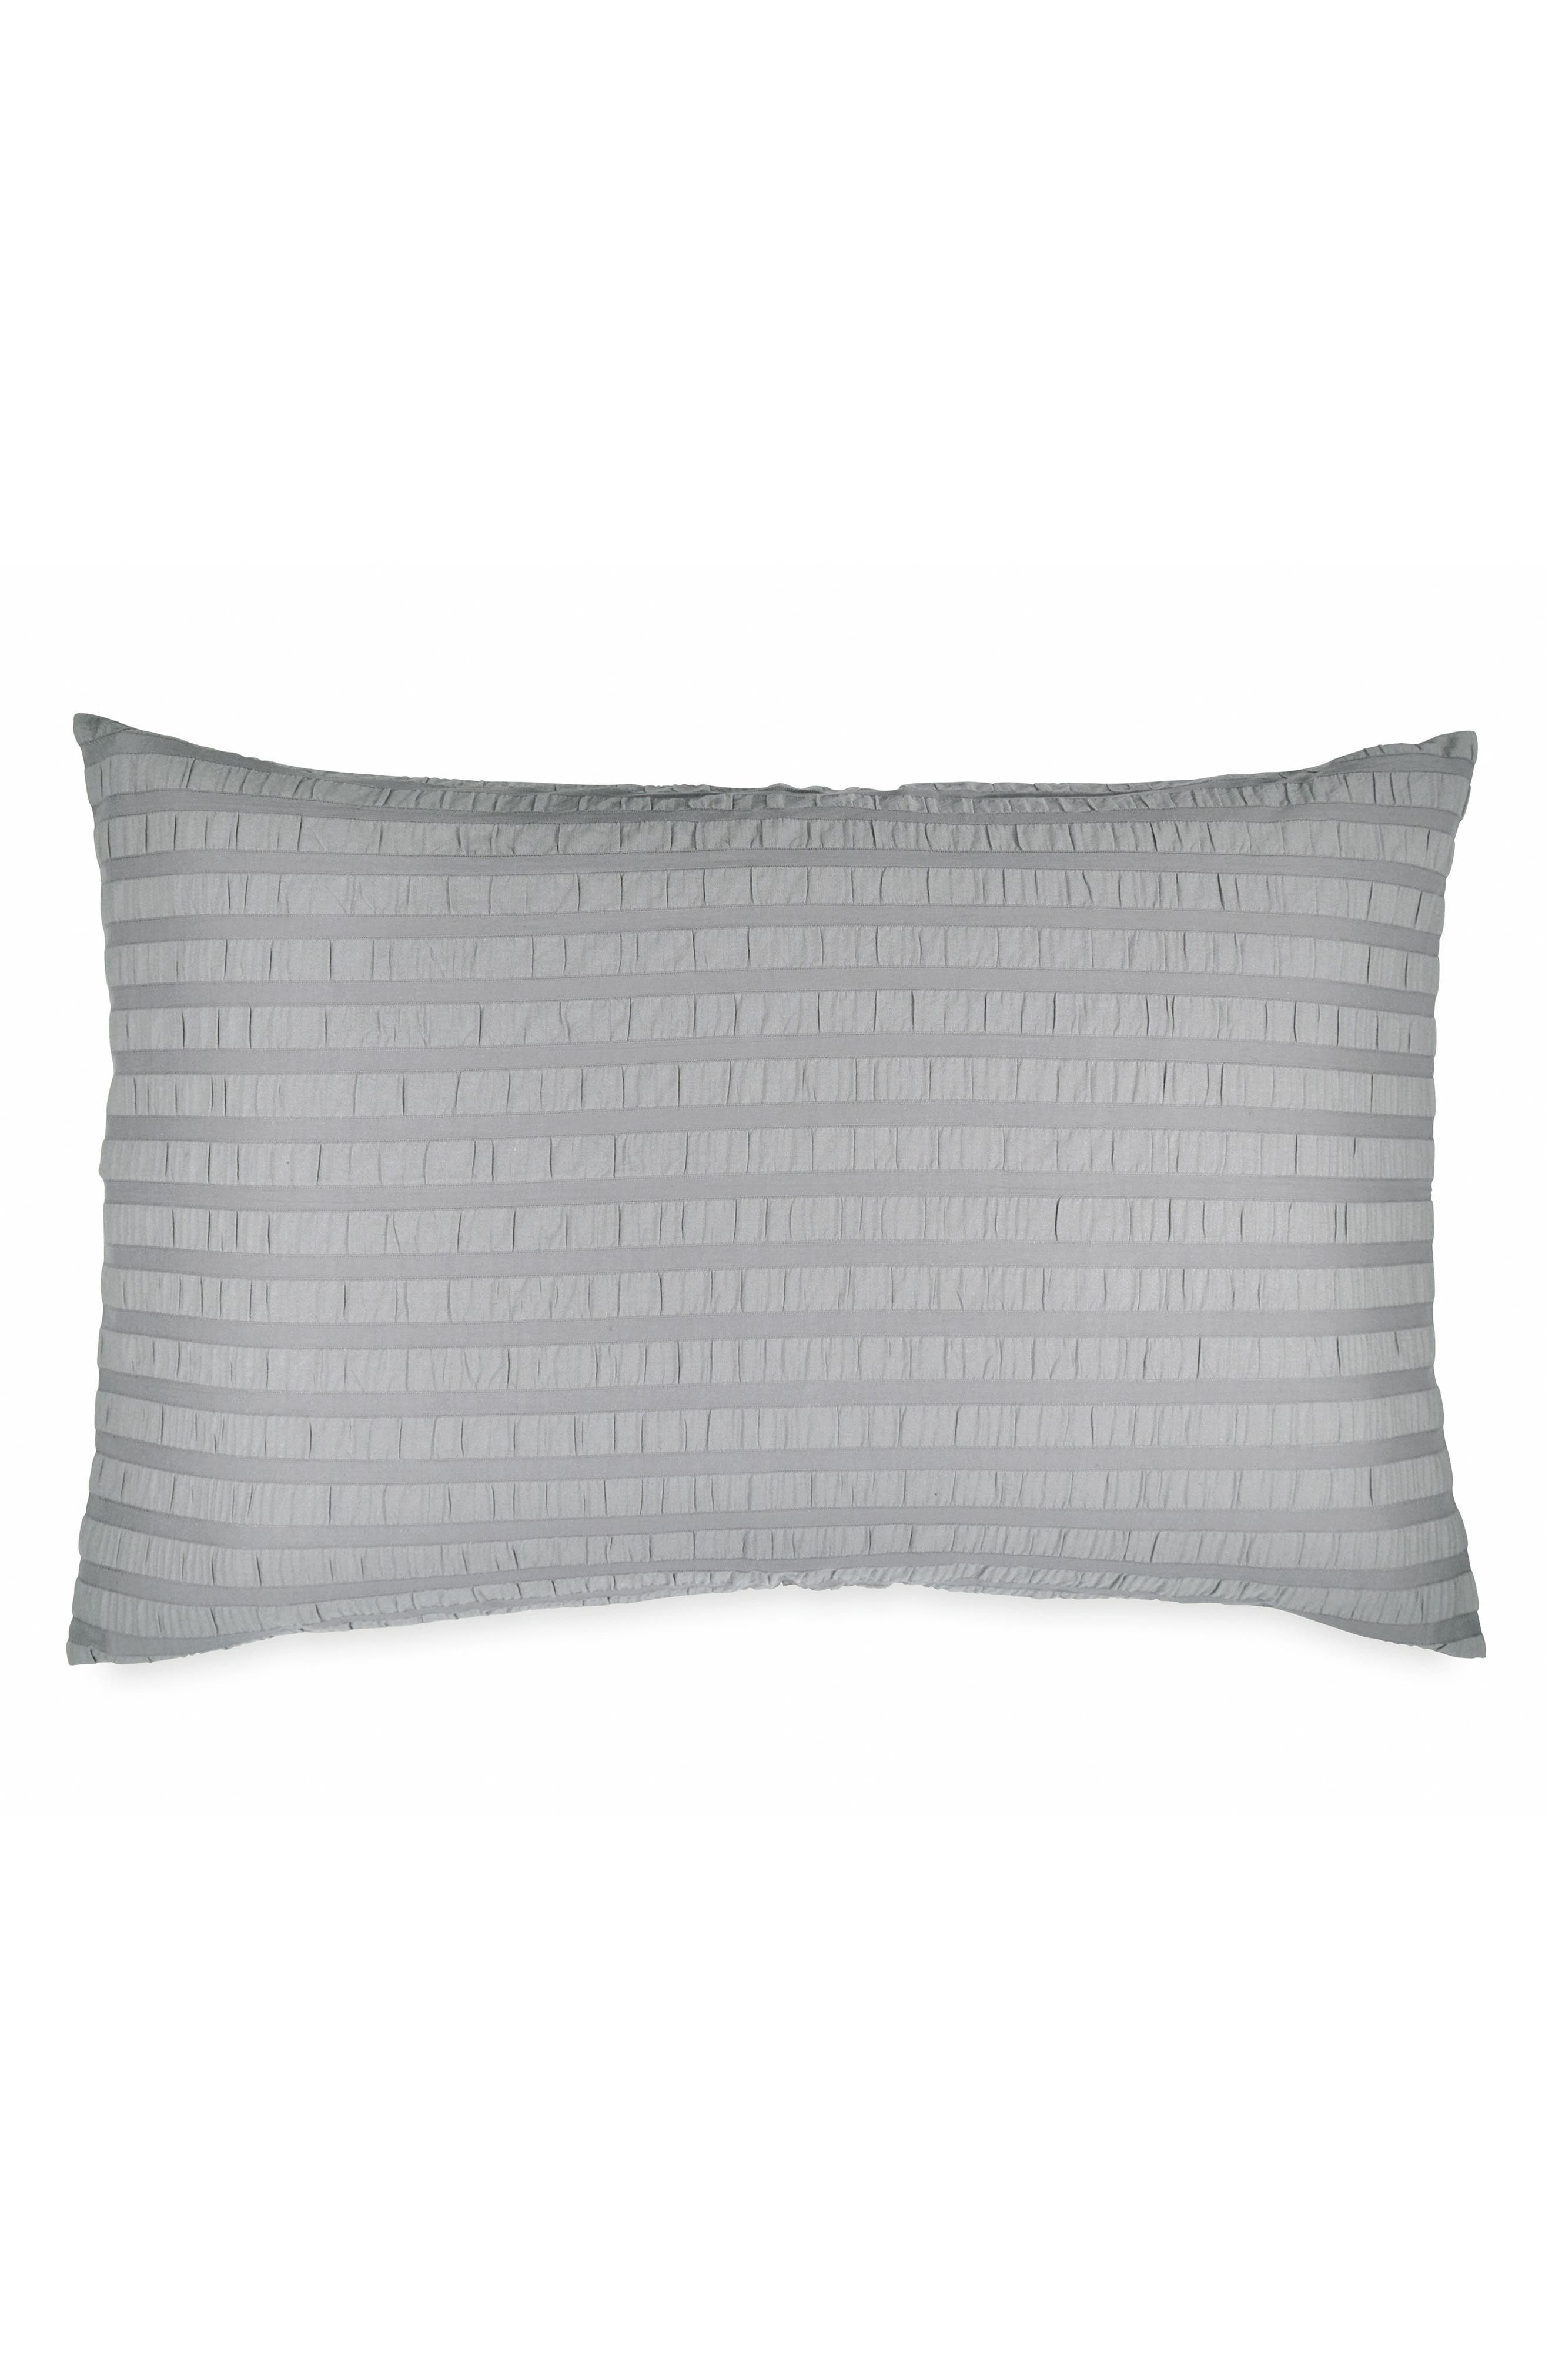 City Crush Sham,                         Main,                         color, GREY